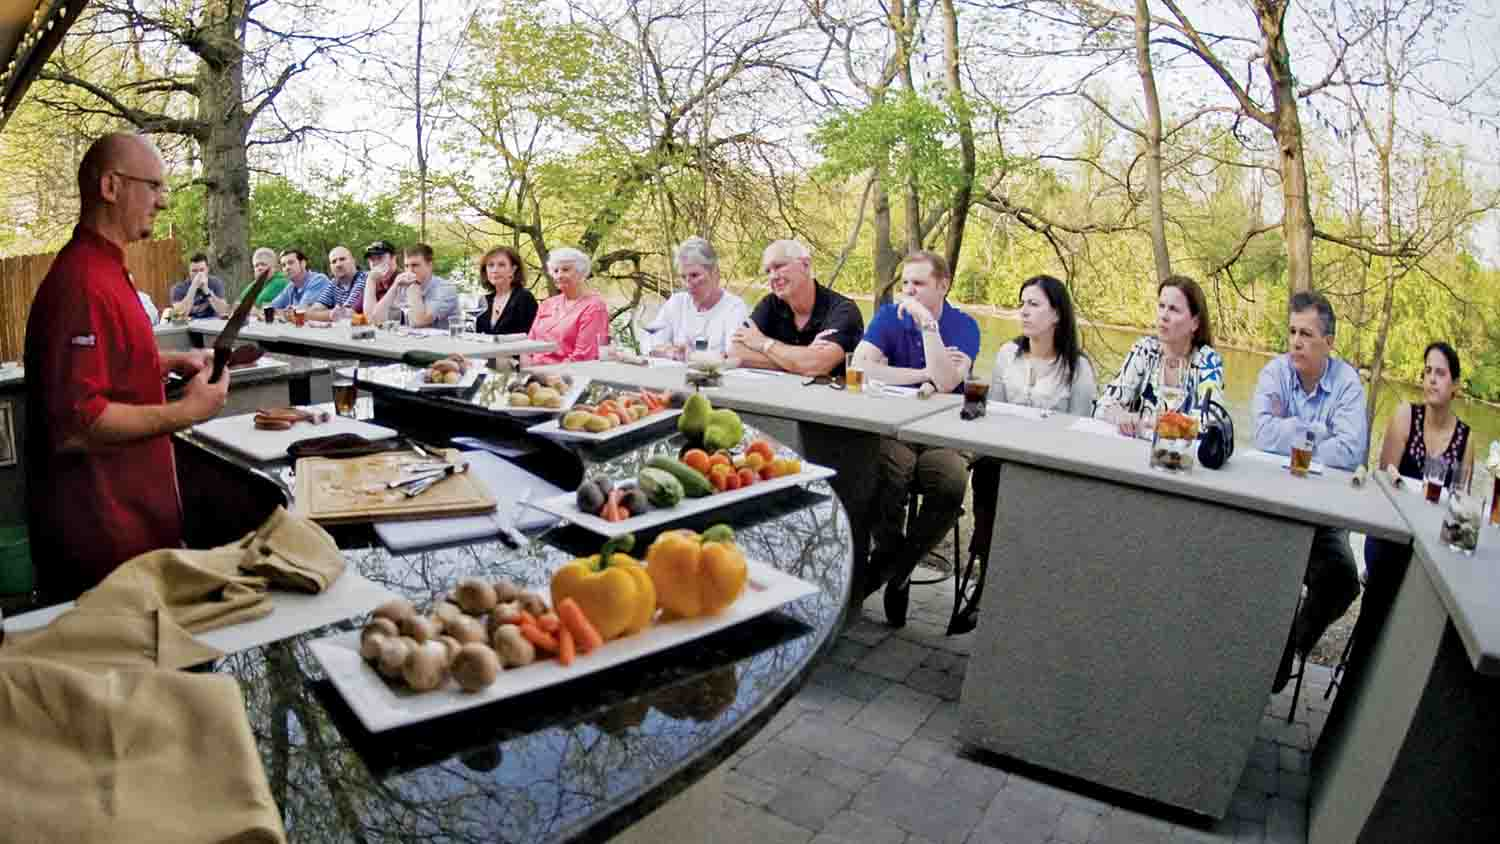 Indy Ag & Culinary Tour - The Food We Love